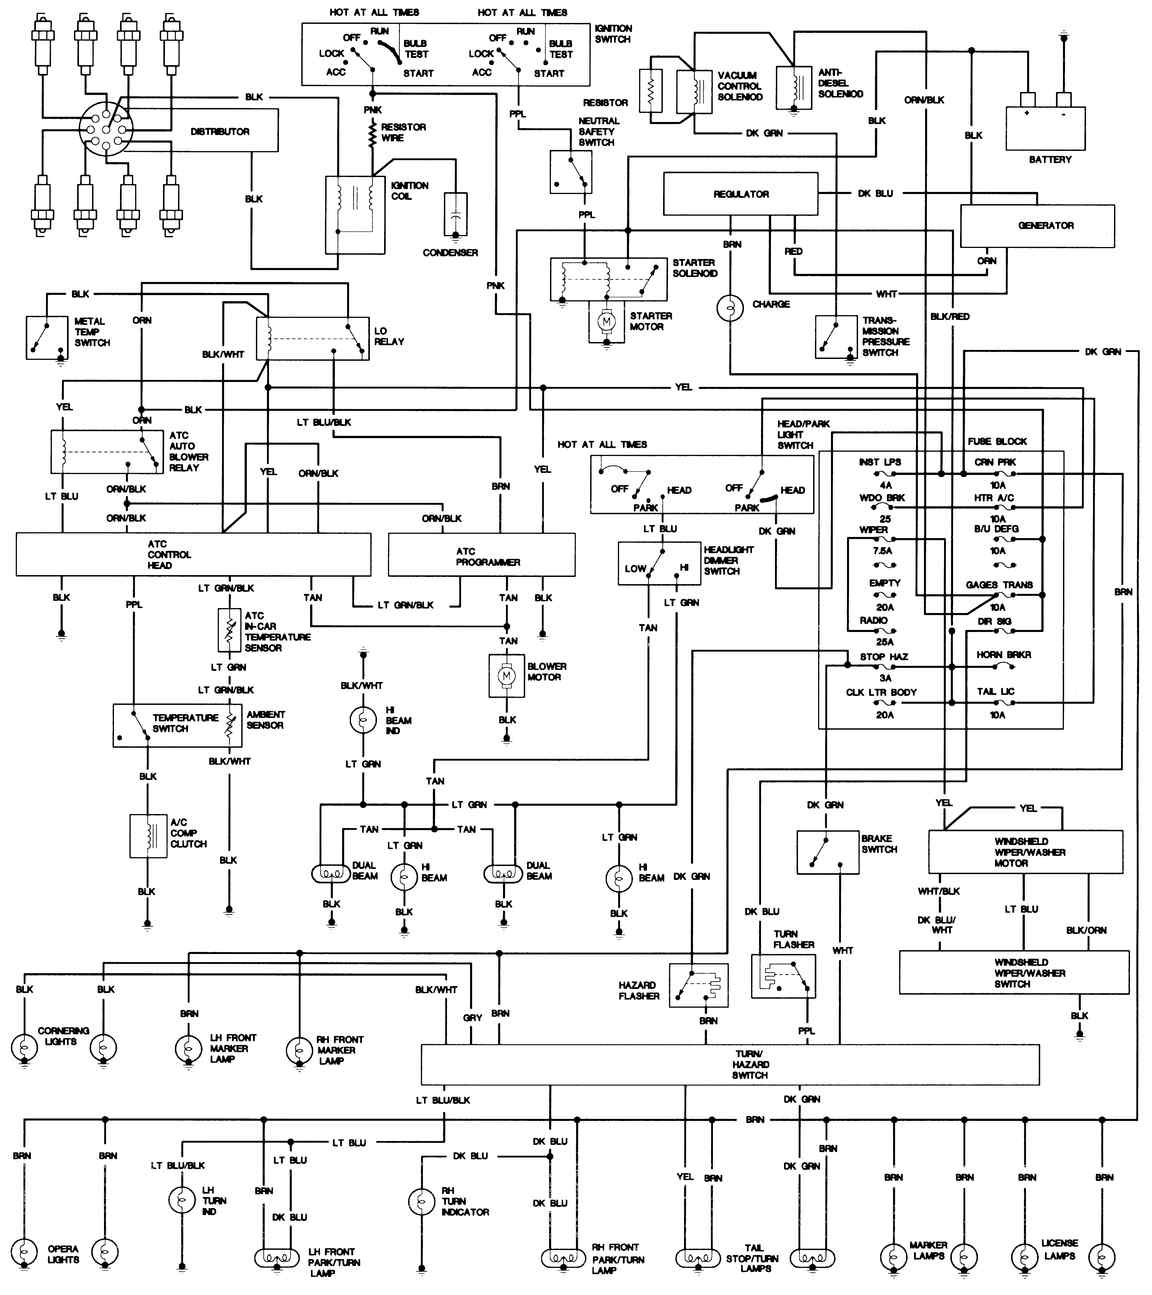 1970 ford starter wiring dm 1409  71 ford f100 wiring diagram get free image about wiring  ford f100 wiring diagram get free image